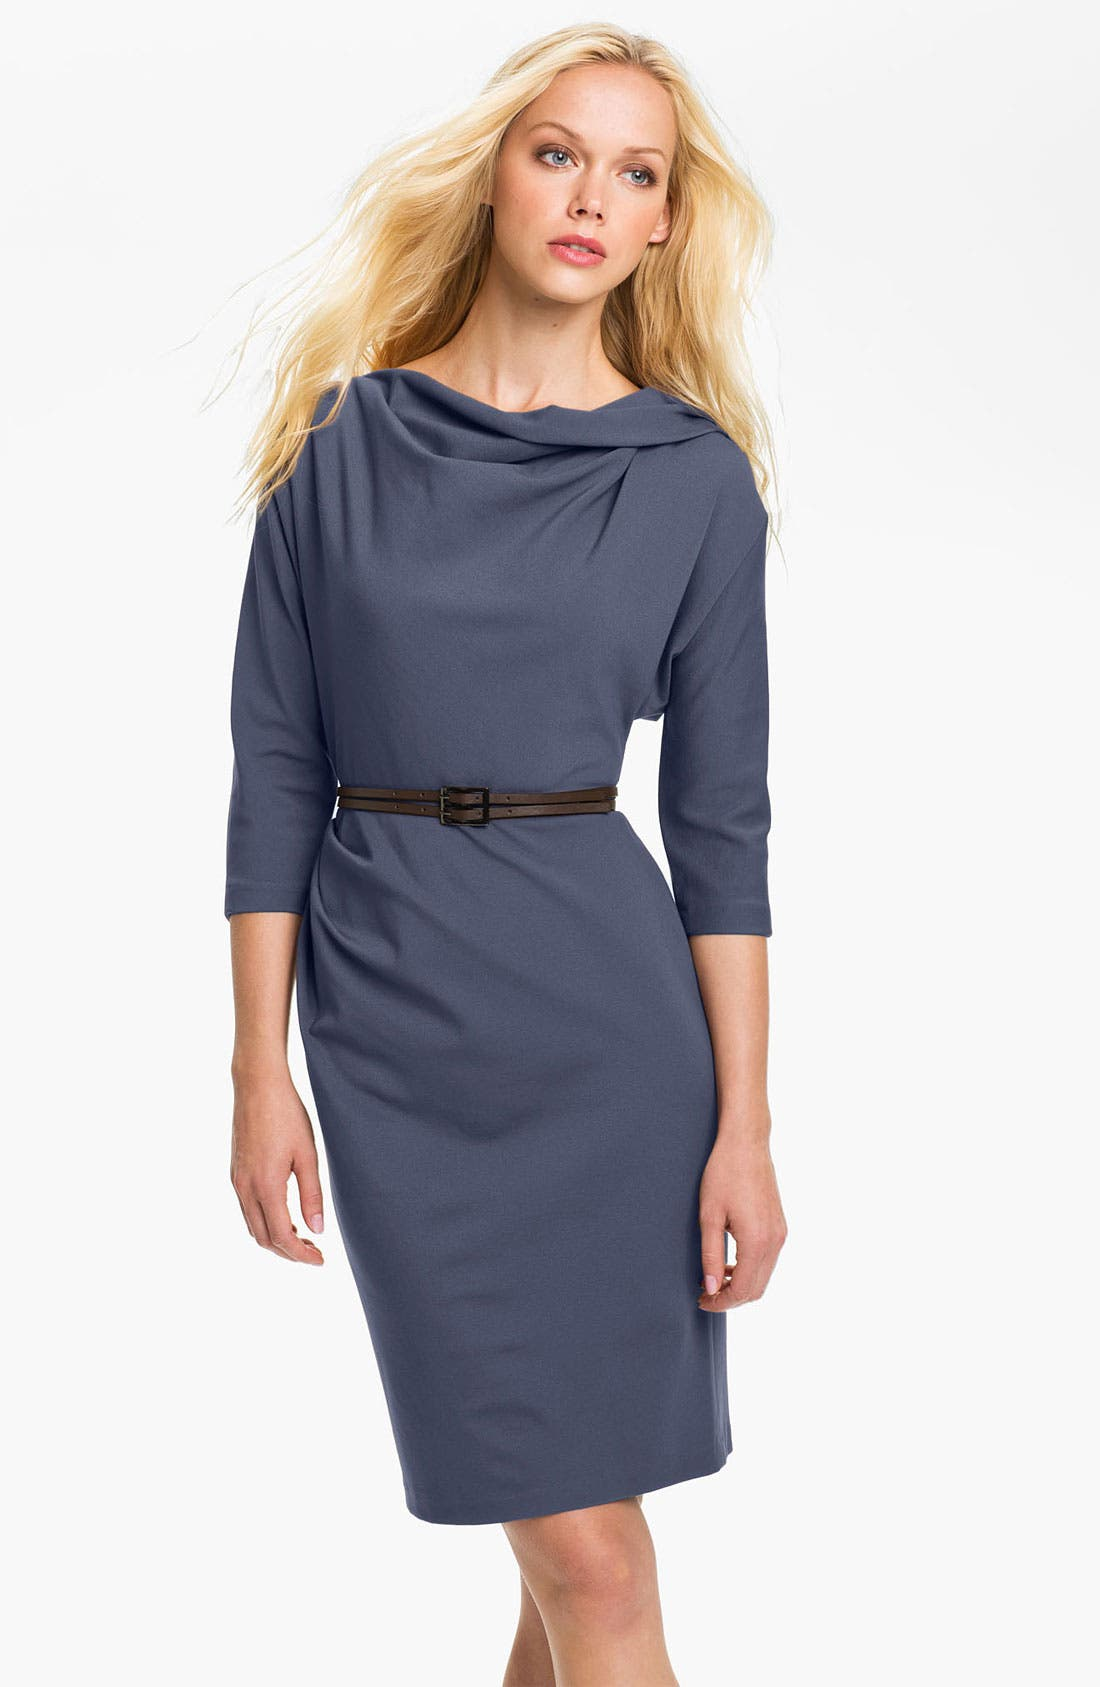 Alternate Image 1 Selected - Suzi Chin for Maggy Boutique Belted Dolman Sleeve Sheath Dress (Petite)